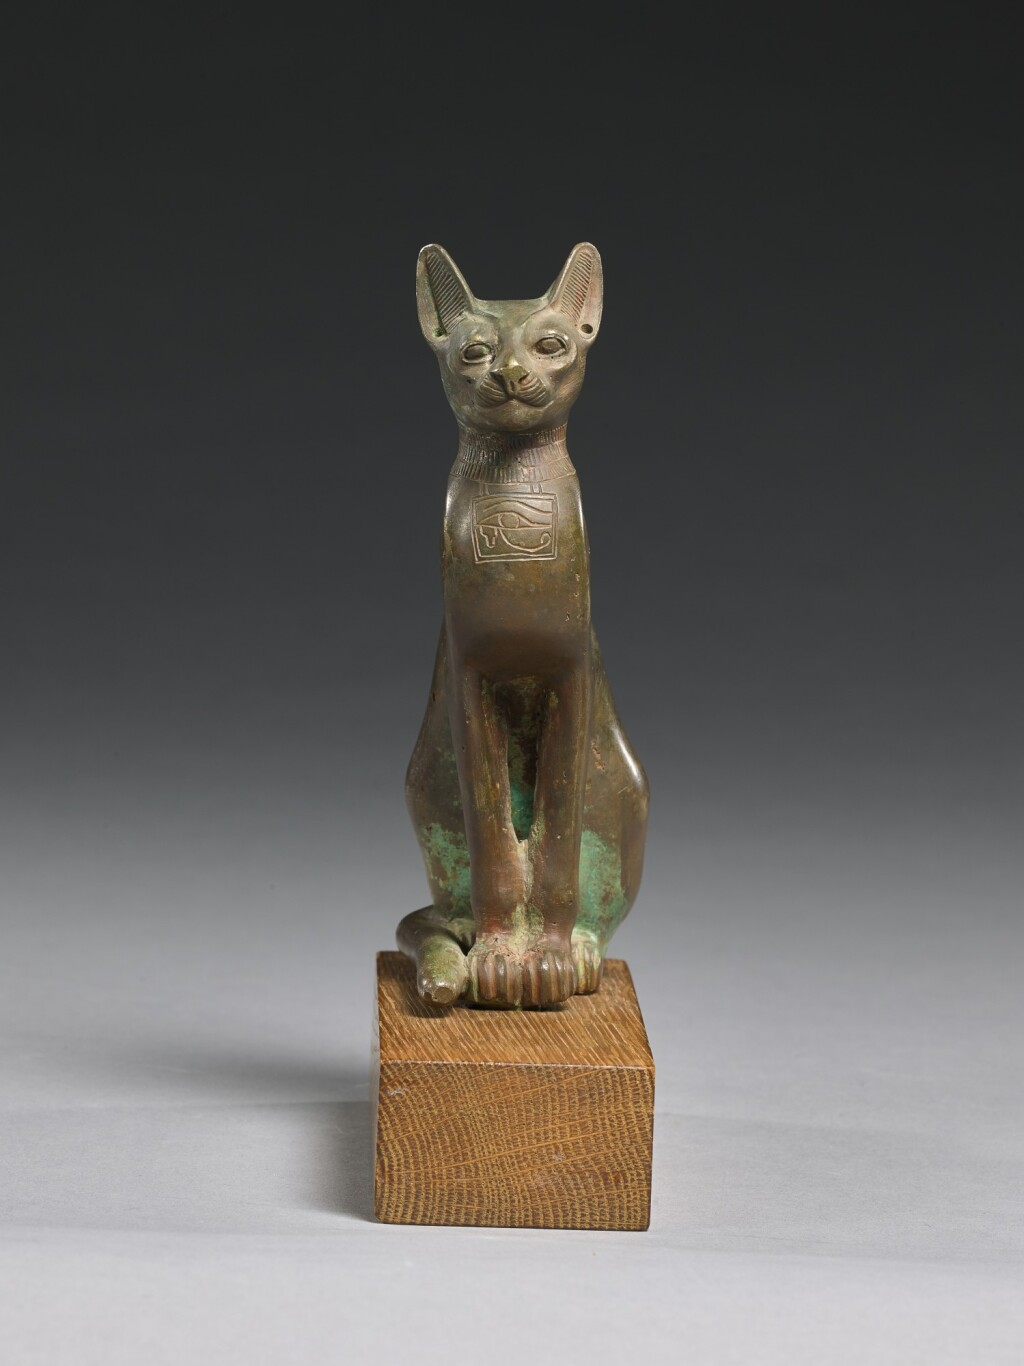 AN EGYPTIAN BRONZE FIGURE OF A CAT, 21ST/26TH DYNASTY, 1075-525 B.C.